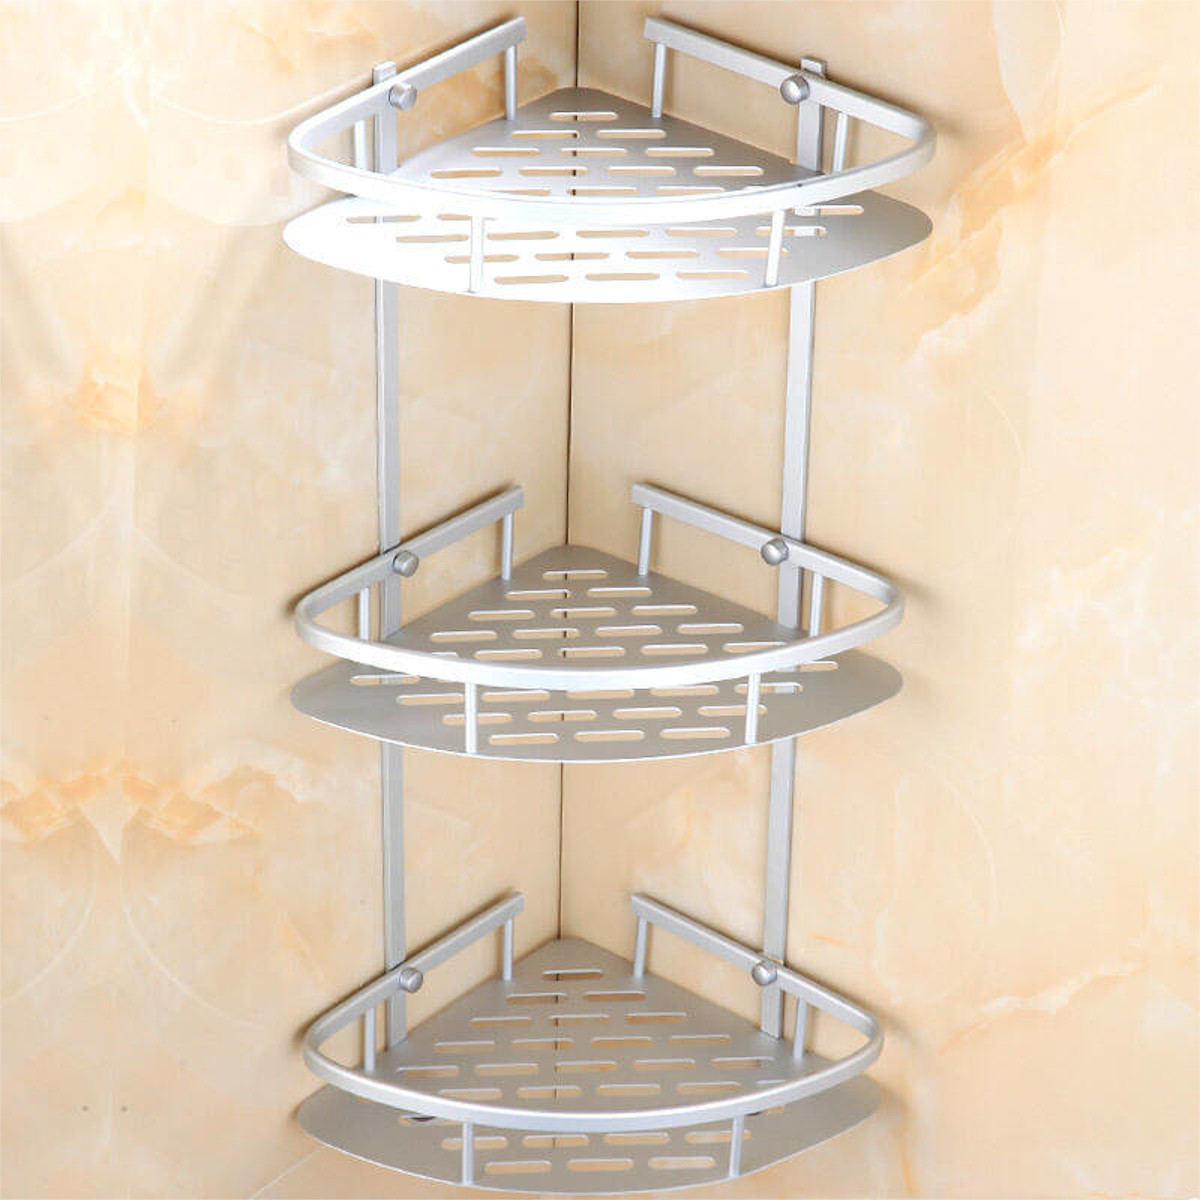 Stainless Steel Bathroom Corner Shelves Marcuscable Com